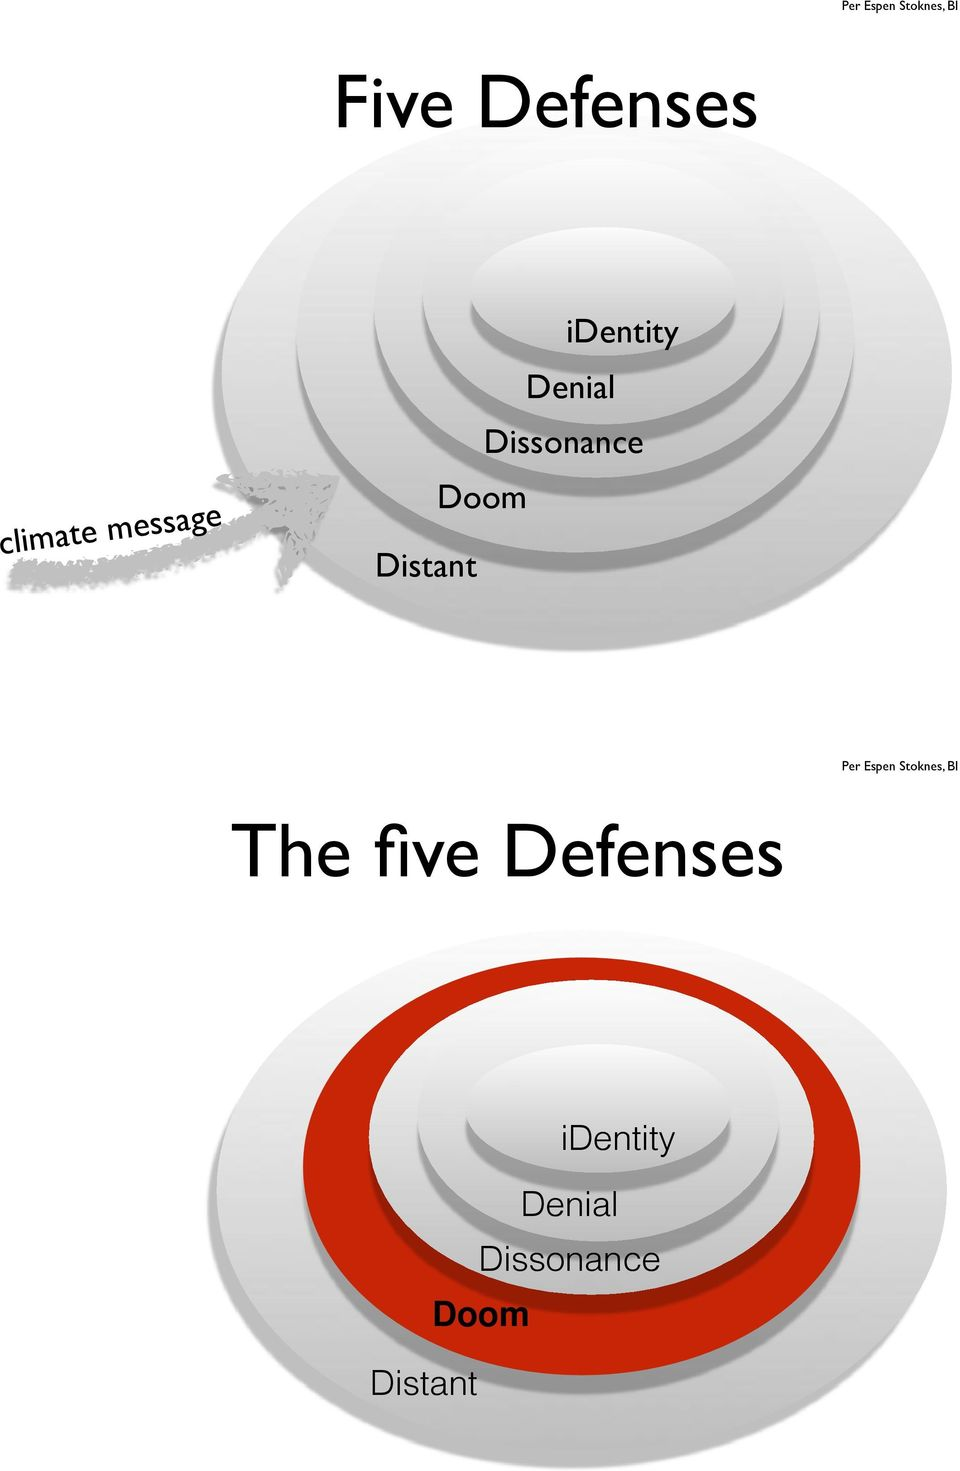 Distant The five Defenses